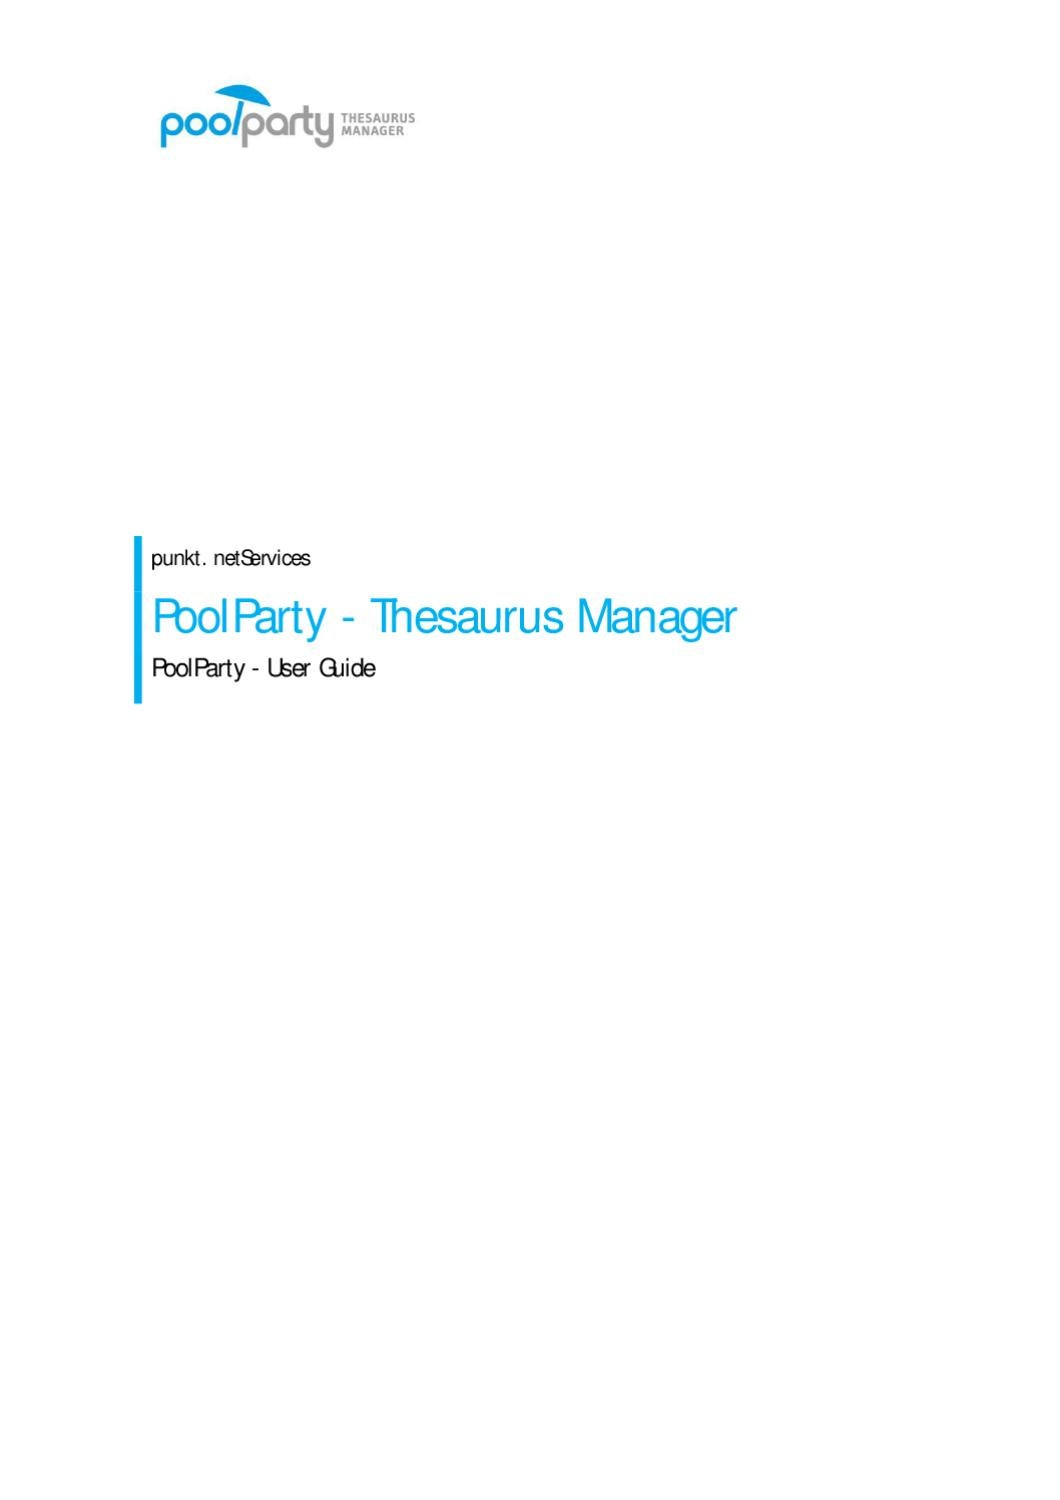 PoolParty Thesaurus Management - User Manual by Semantic Web Company